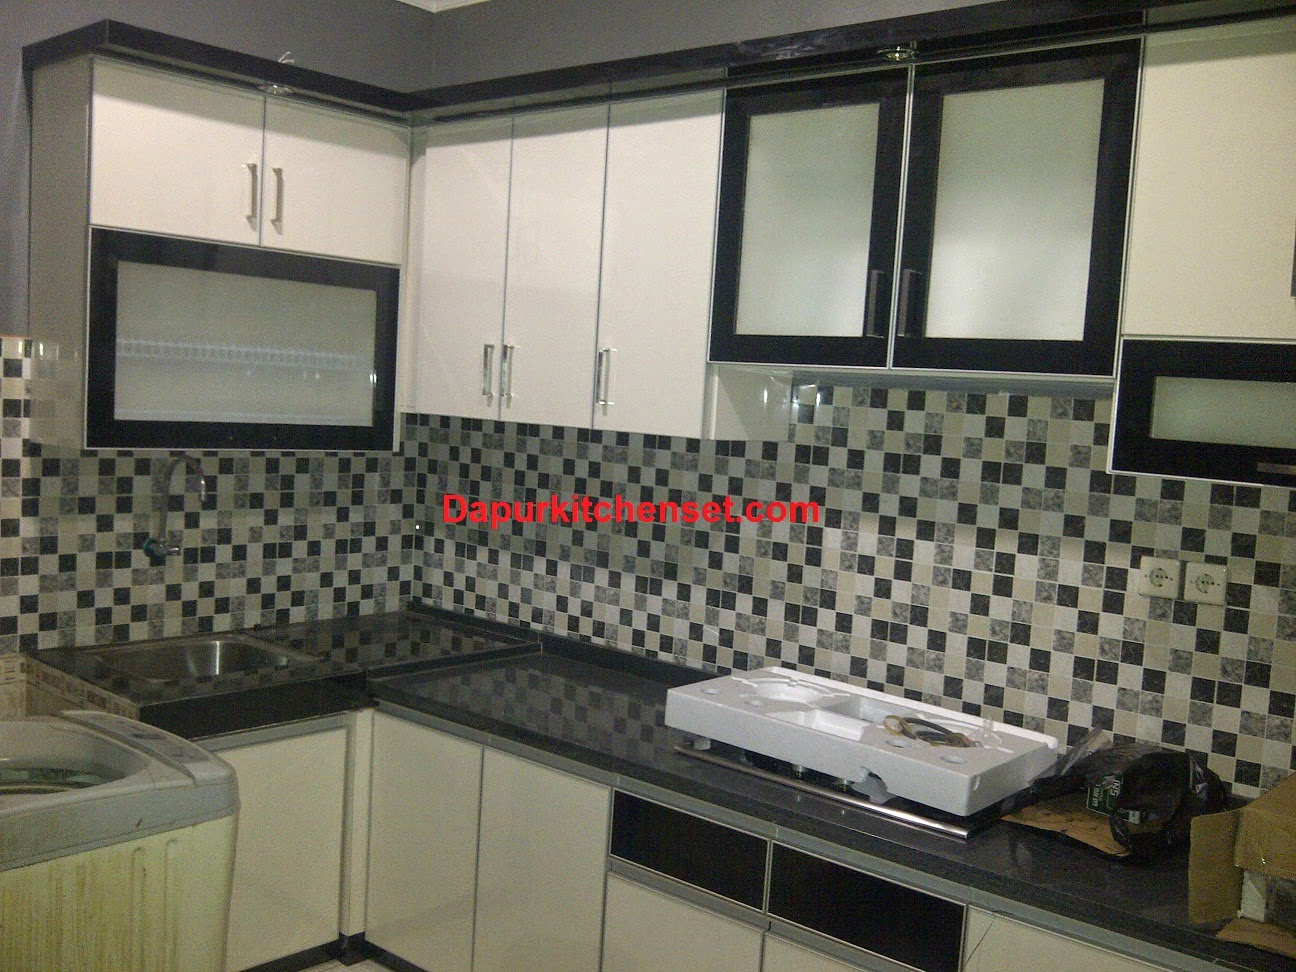 Jasa kitchen set harga kitchen set per meter murah for Harga kitchen set aluminium per meter